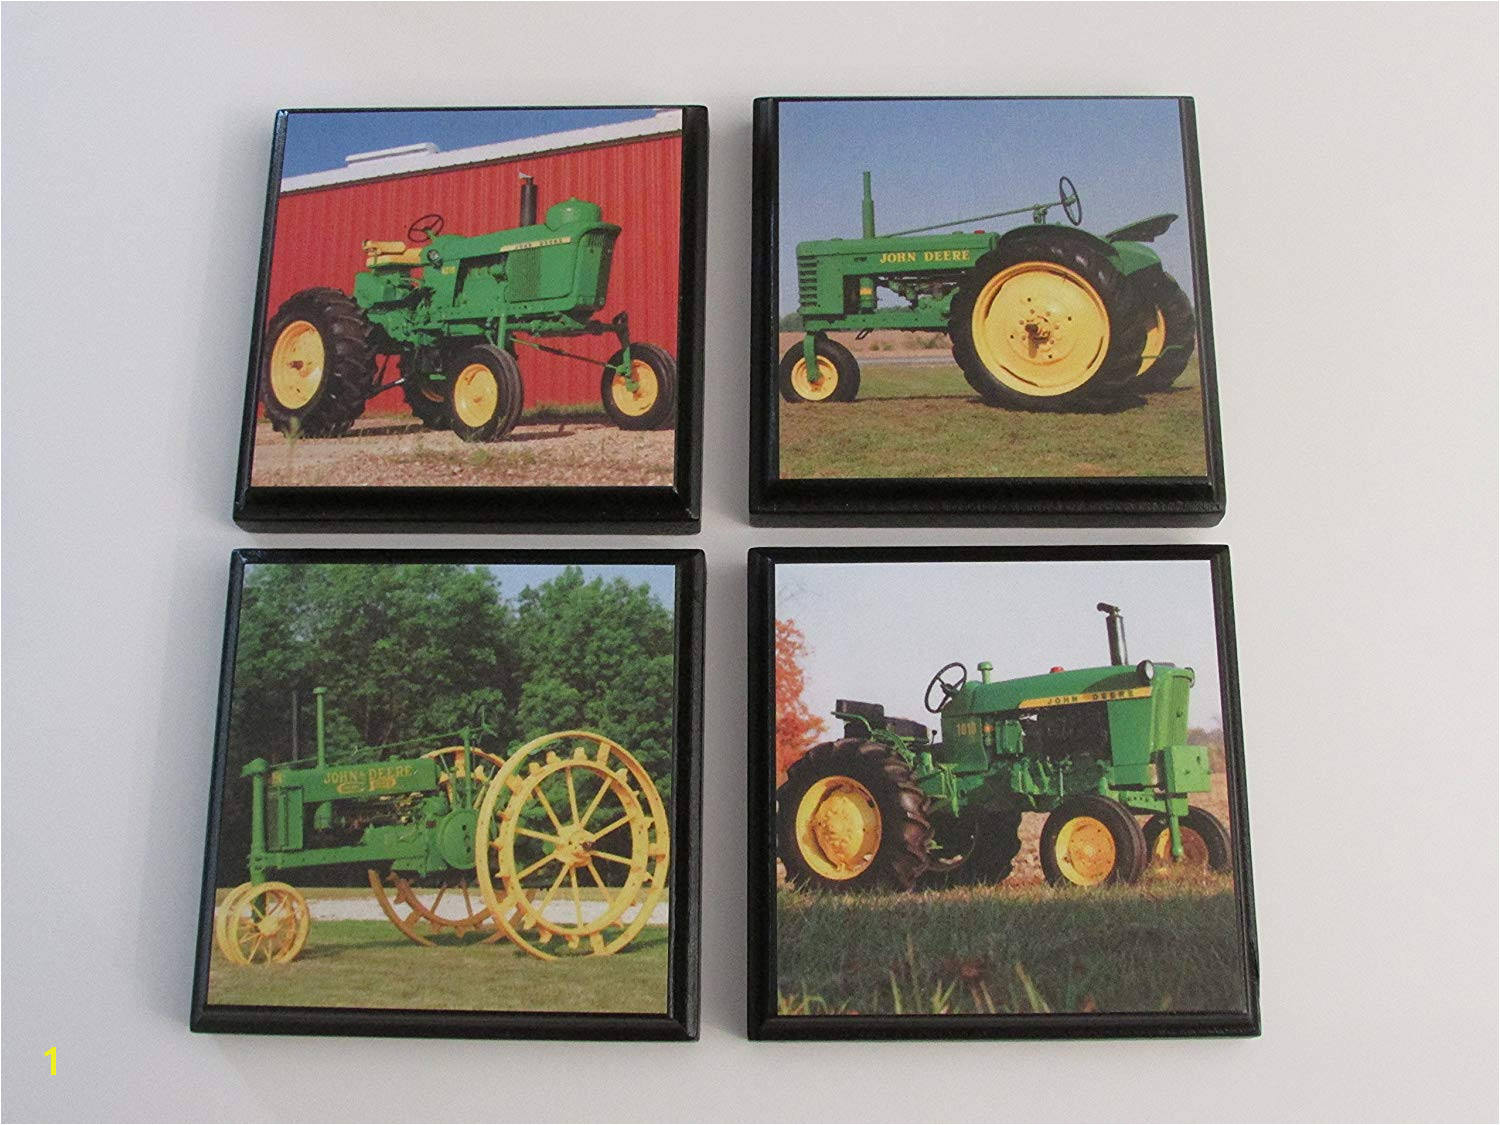 Get Quotations · Green Tractor John Deere Room Wall Plaques Set of 4 John Deere green tractor boys